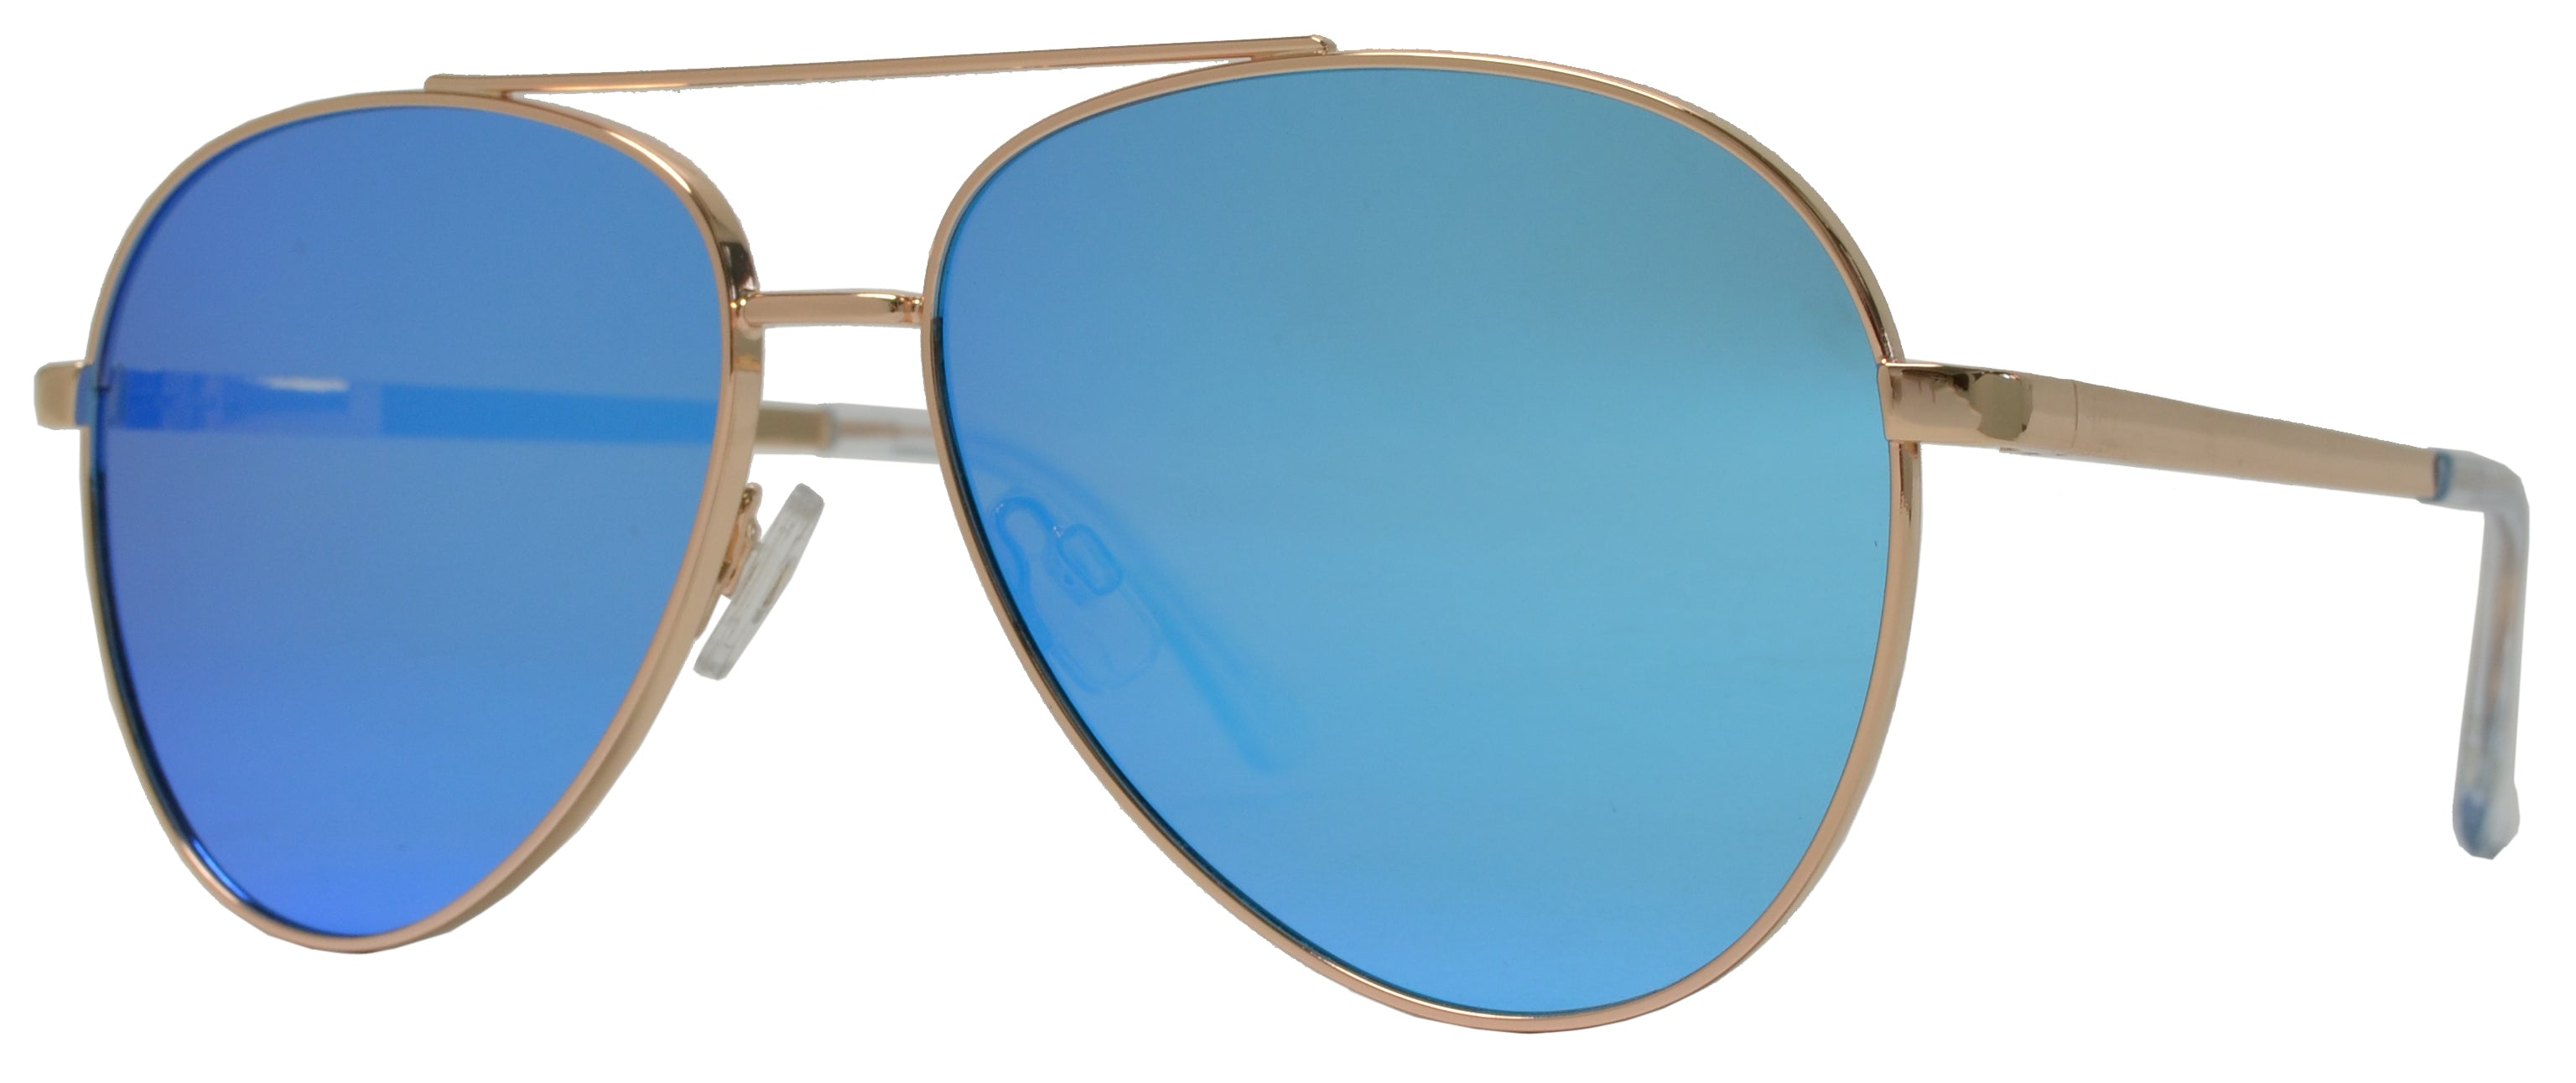 FC 6514 Blue RV - Thick Frame Oval Shaped Sunglasses with Blue Mirror Lens